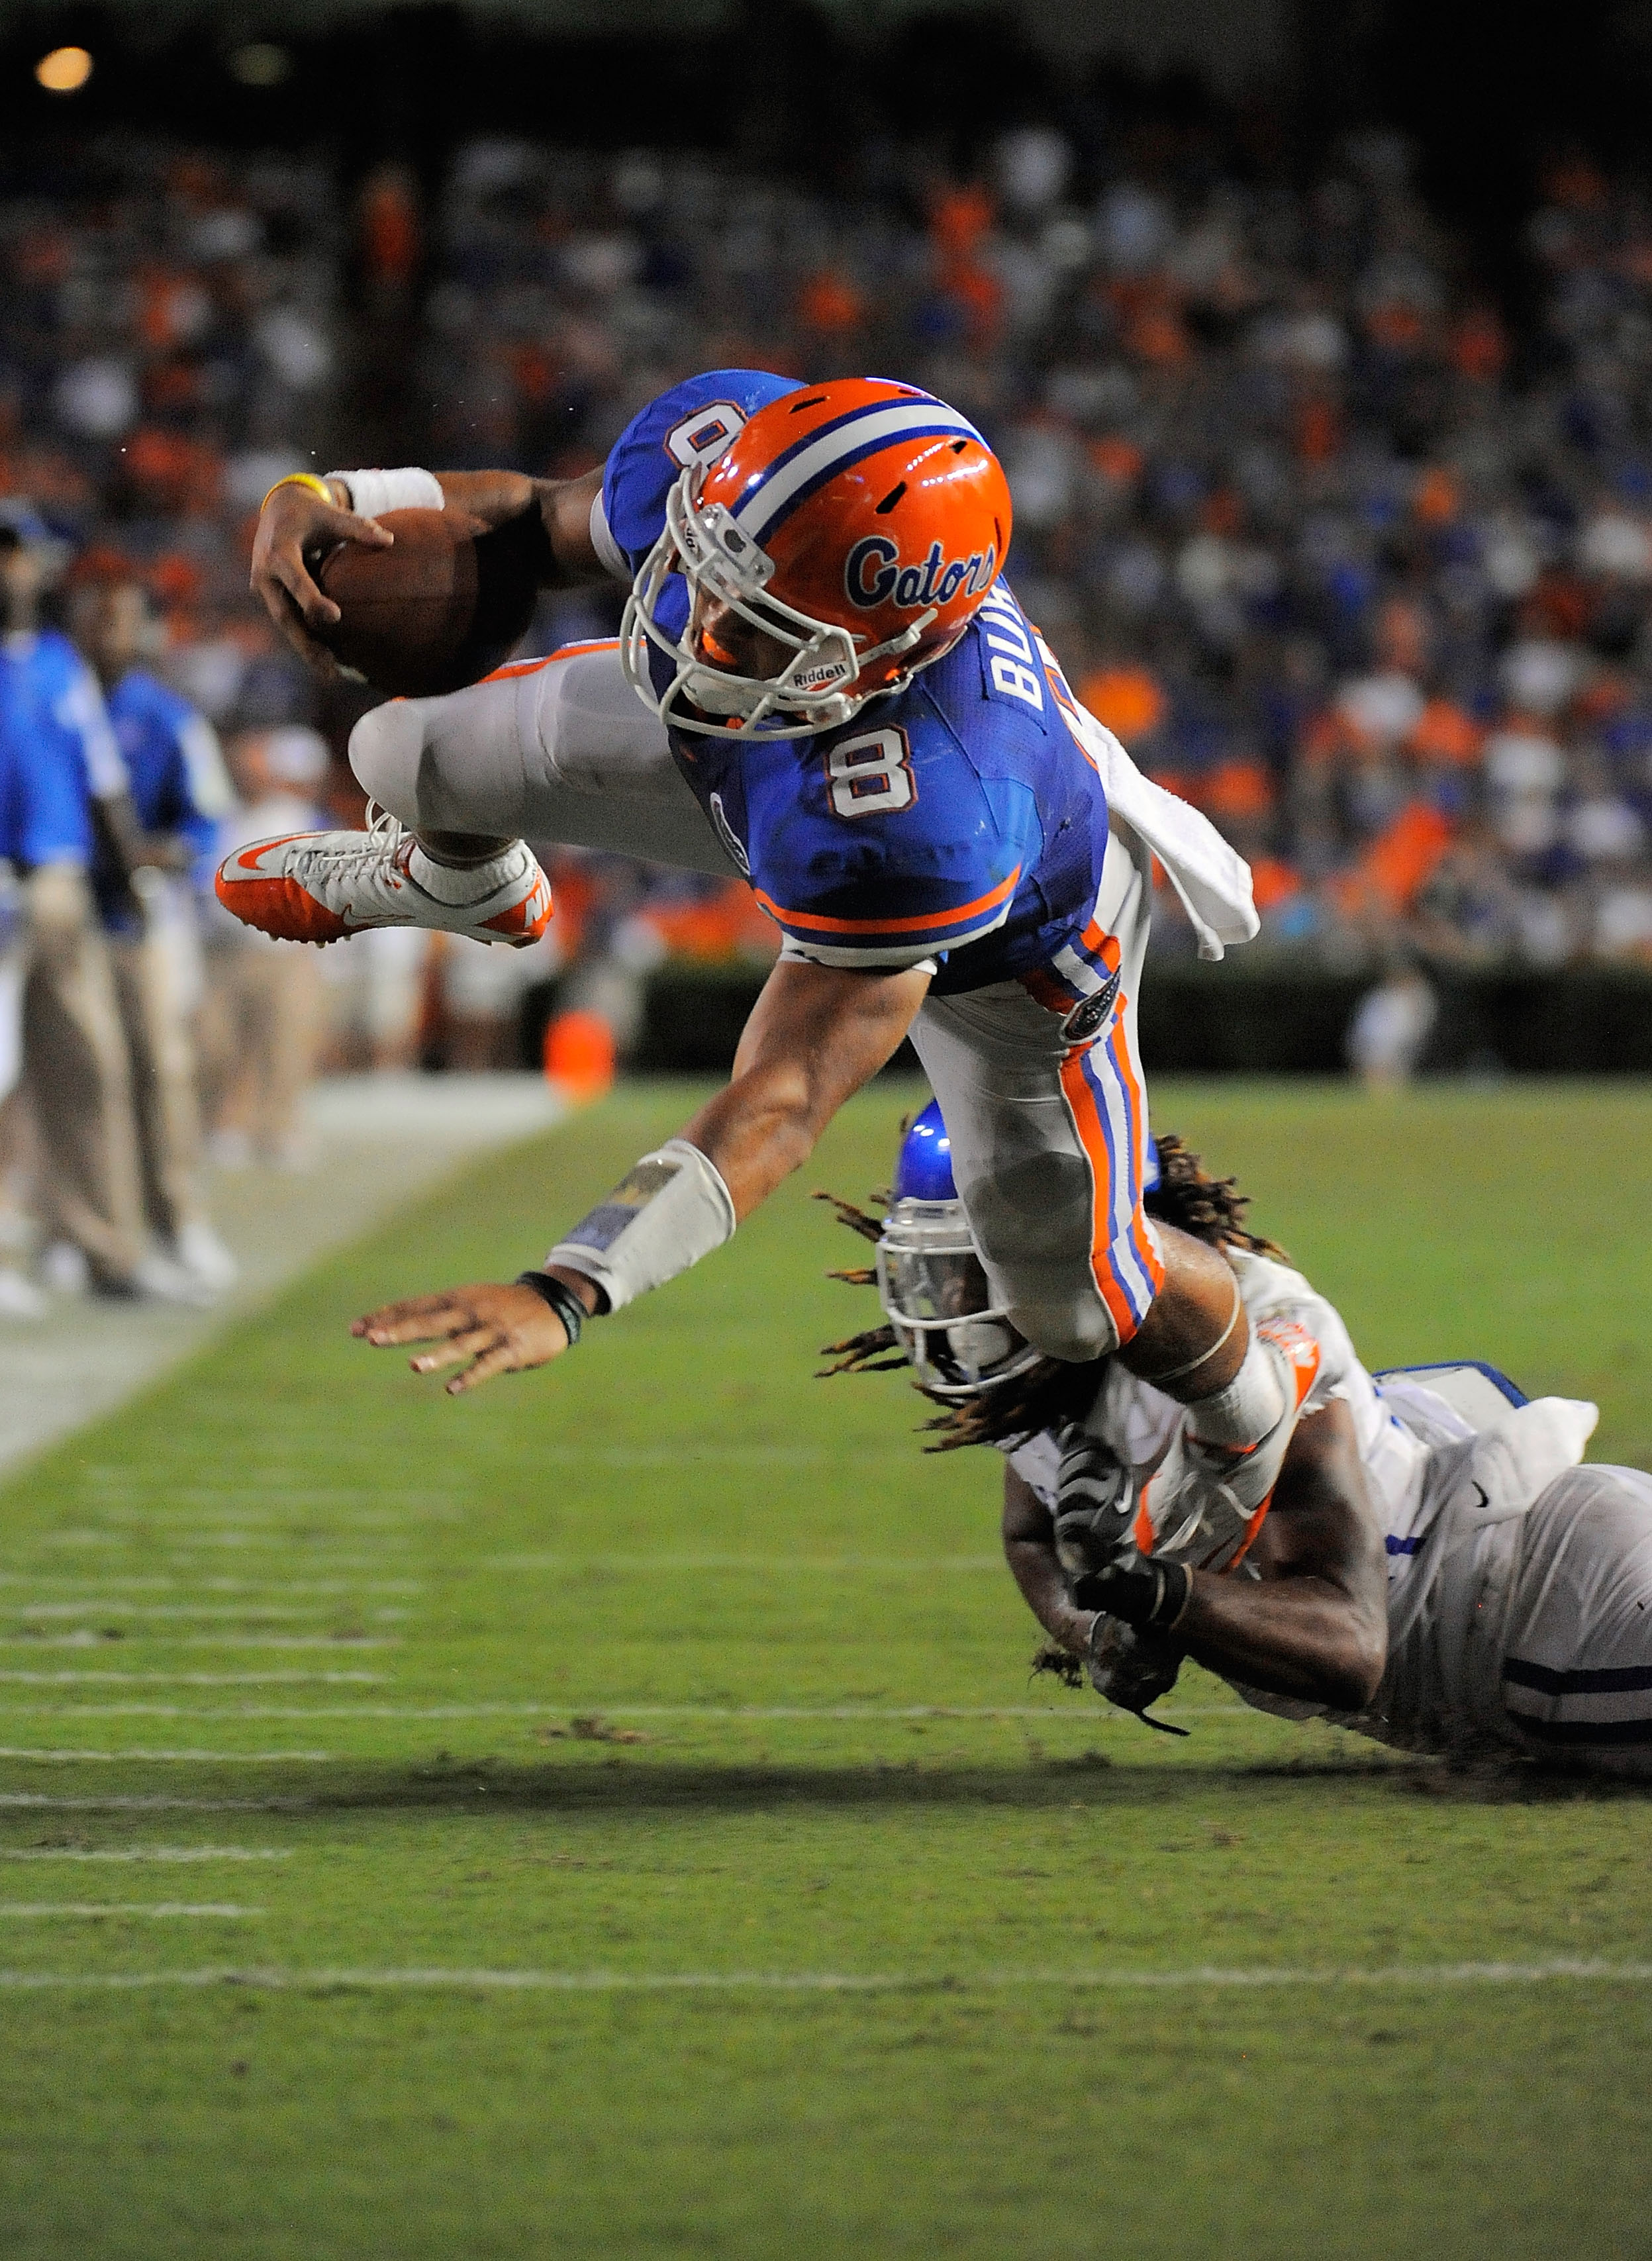 GAINESVILLE, FL - SEPTEMBER 25:  Quarterback Trey Burton #8 of the Florida Gators scores a touchdown as he is brought down by safety Winston Guy Jr. #21 of the Kentucky Wildcats at Ben Hill Griffin Stadium on September 25, 2010 in Gainesville, Florida. Fl